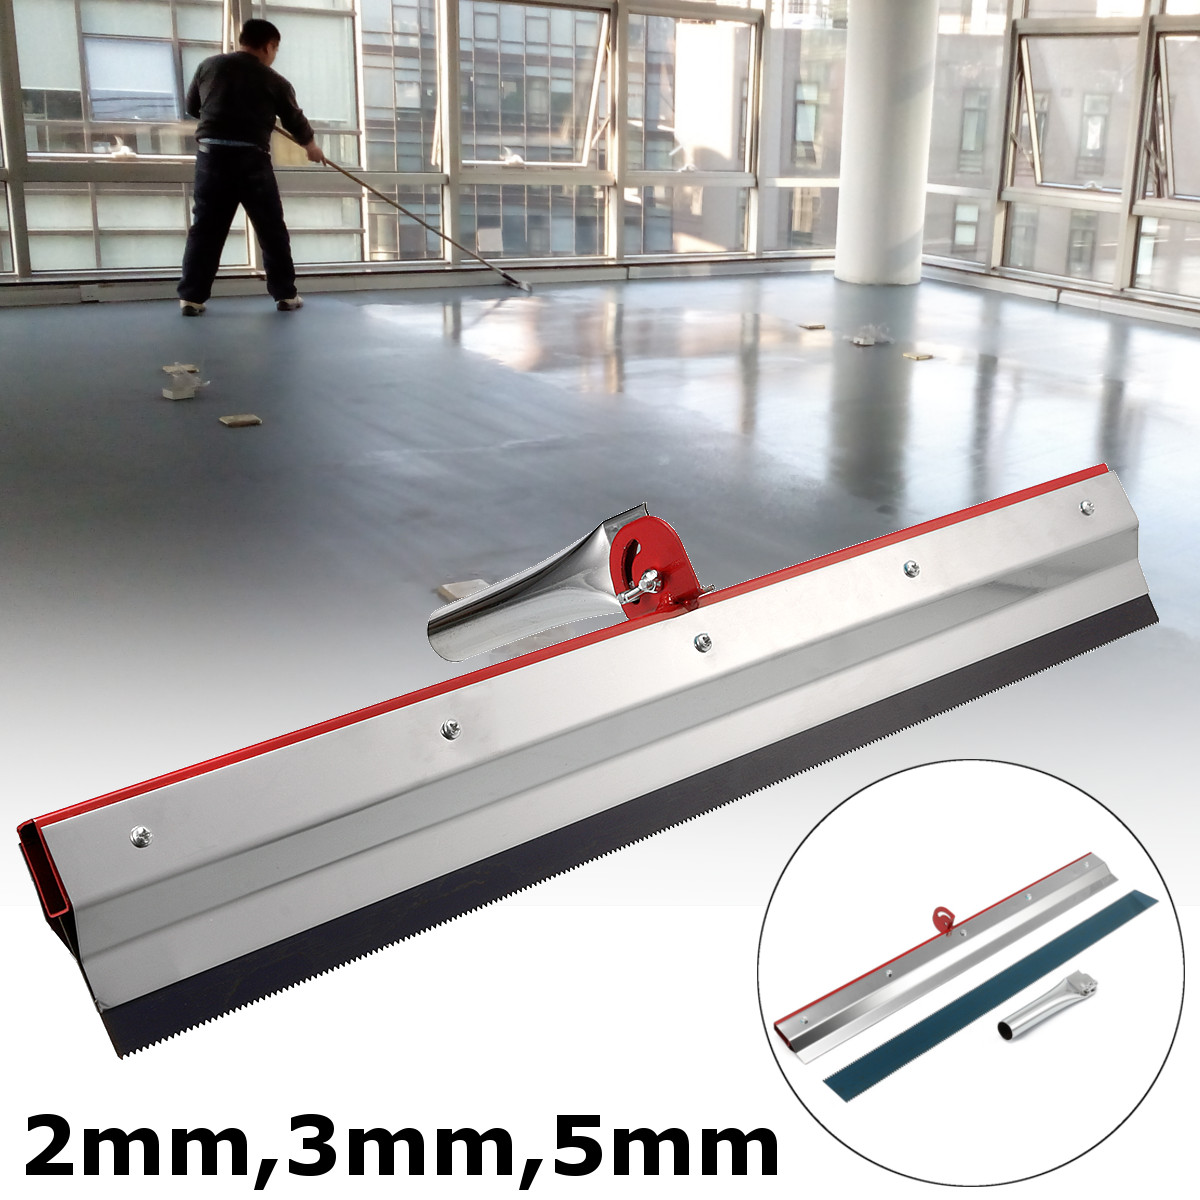 US $21 31 17% OFF 56x12cm Stainless Steel Notched Squeegee Epoxy Cement  Painting Coating Self Leveling Flooring Gear Rake Construction Tools  Part-in